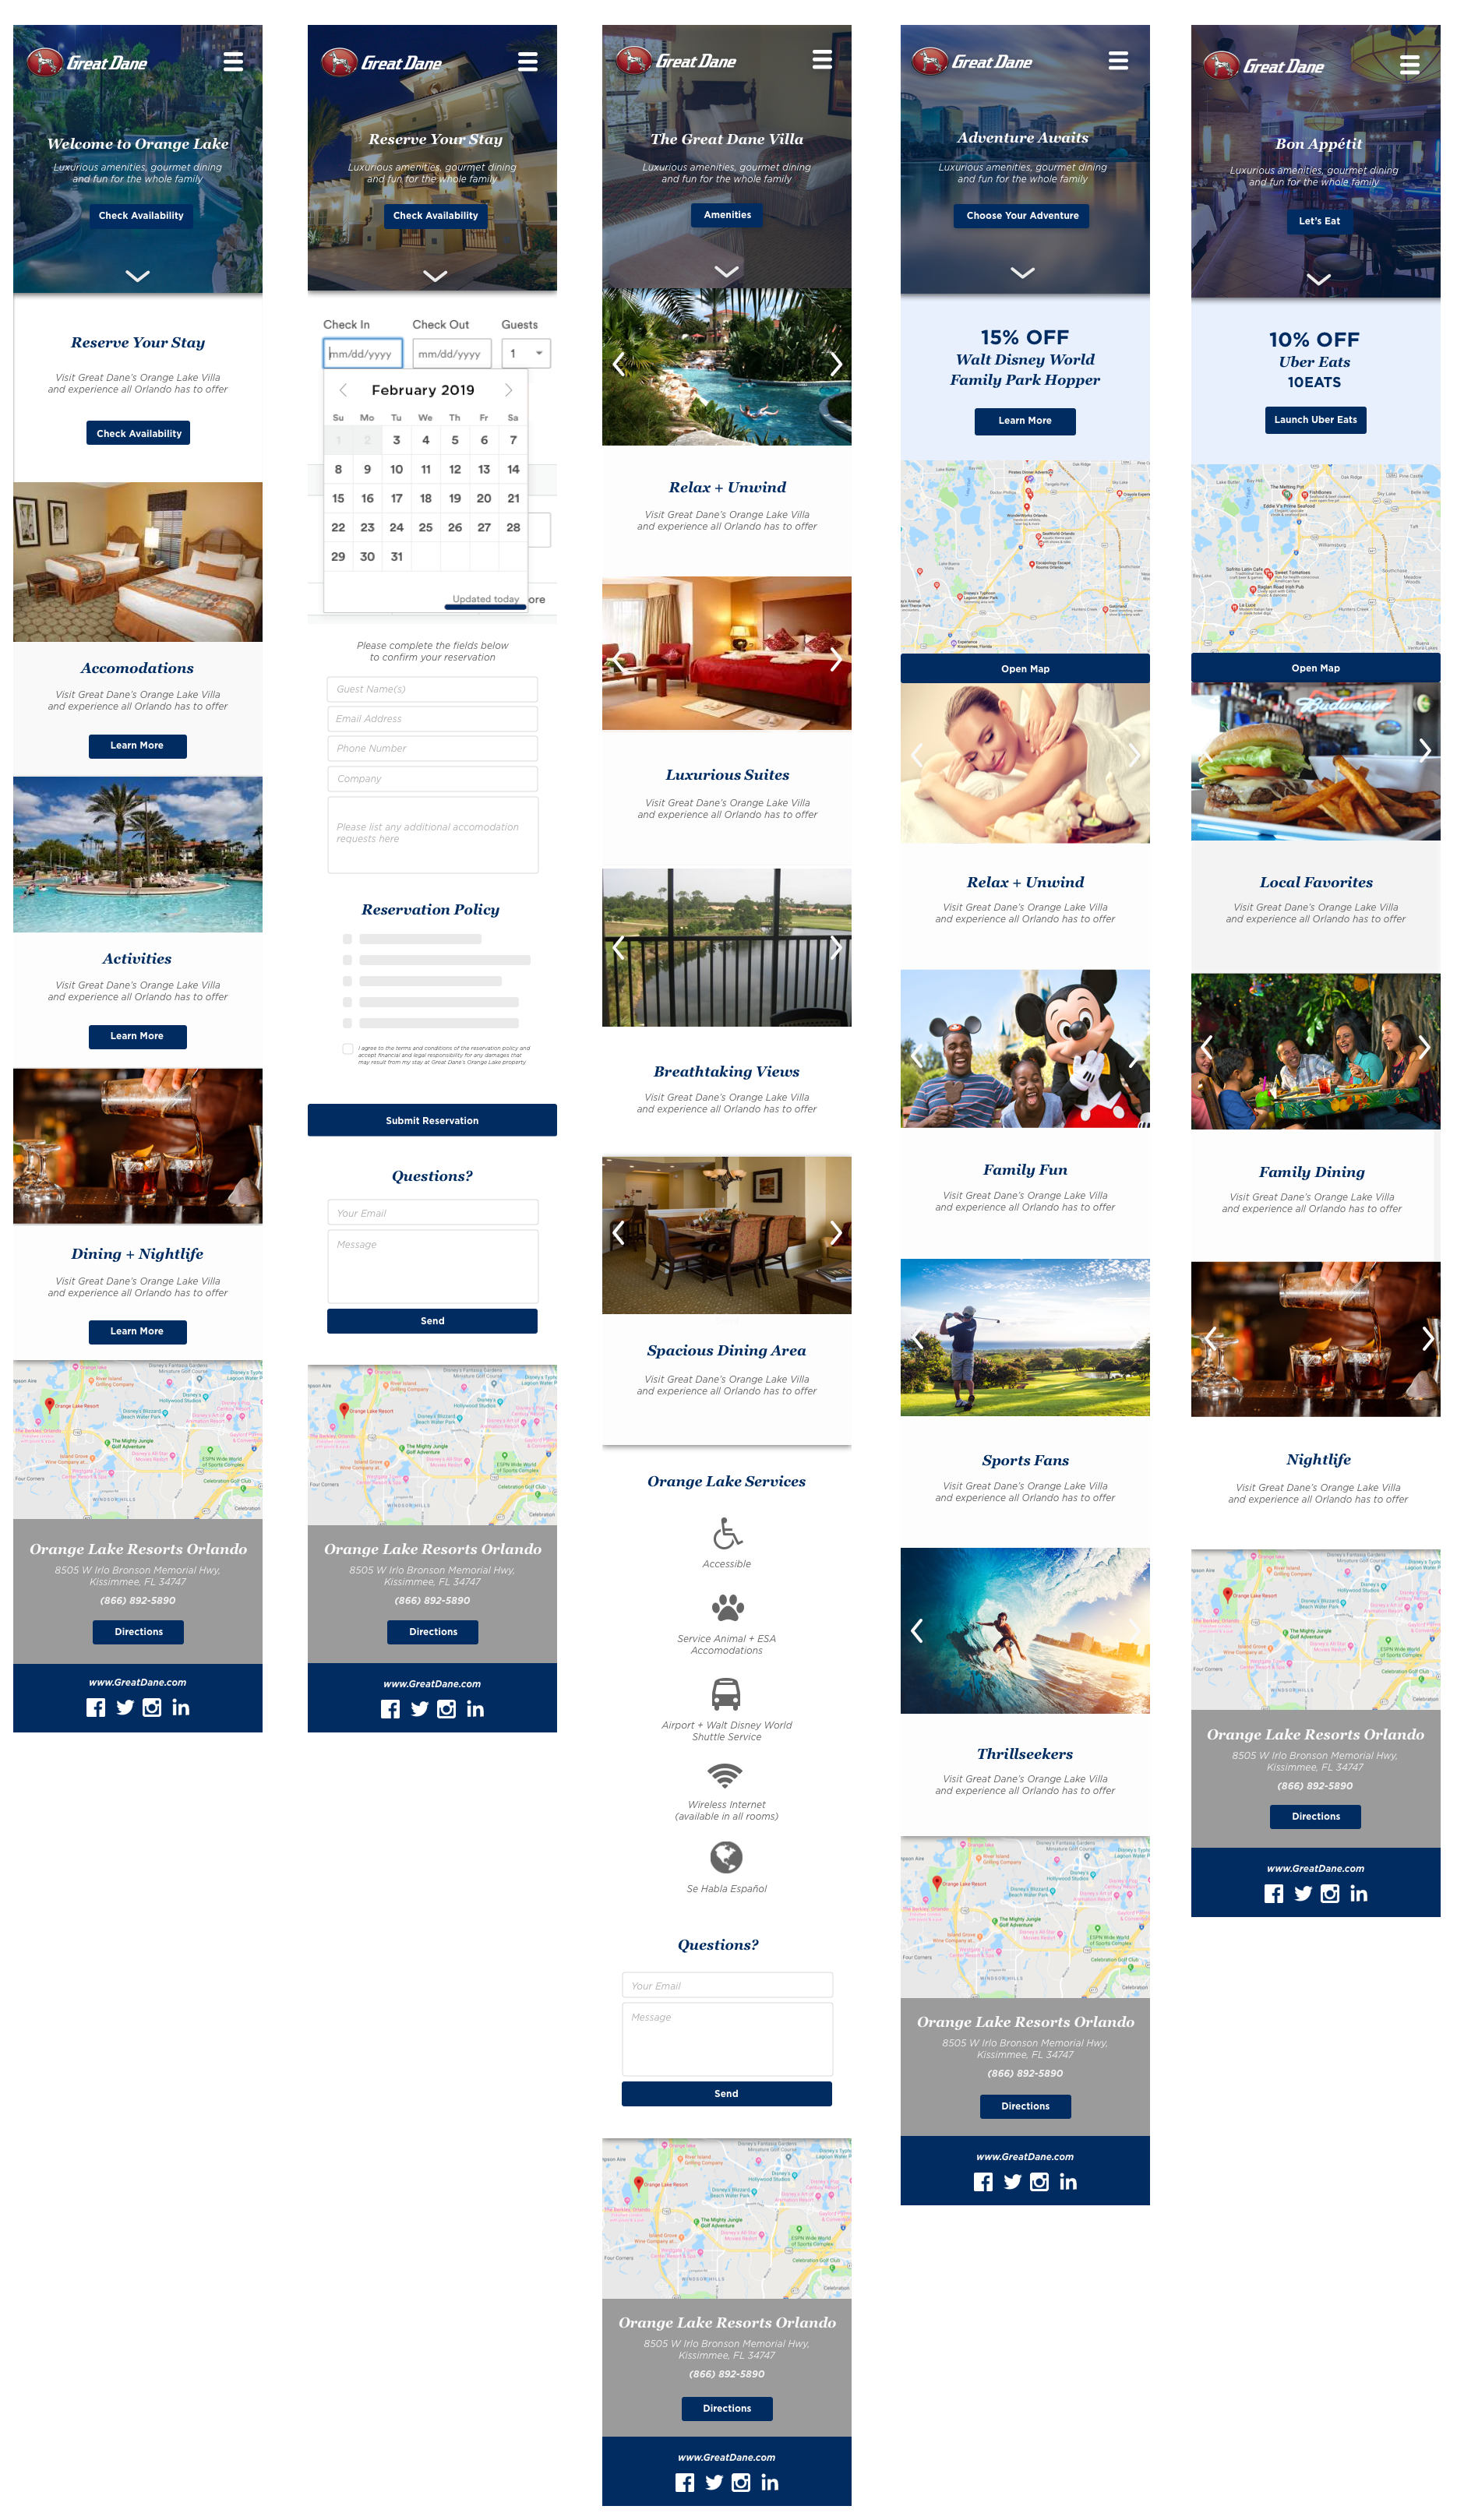 Orange Lake Resorts Mobile Site